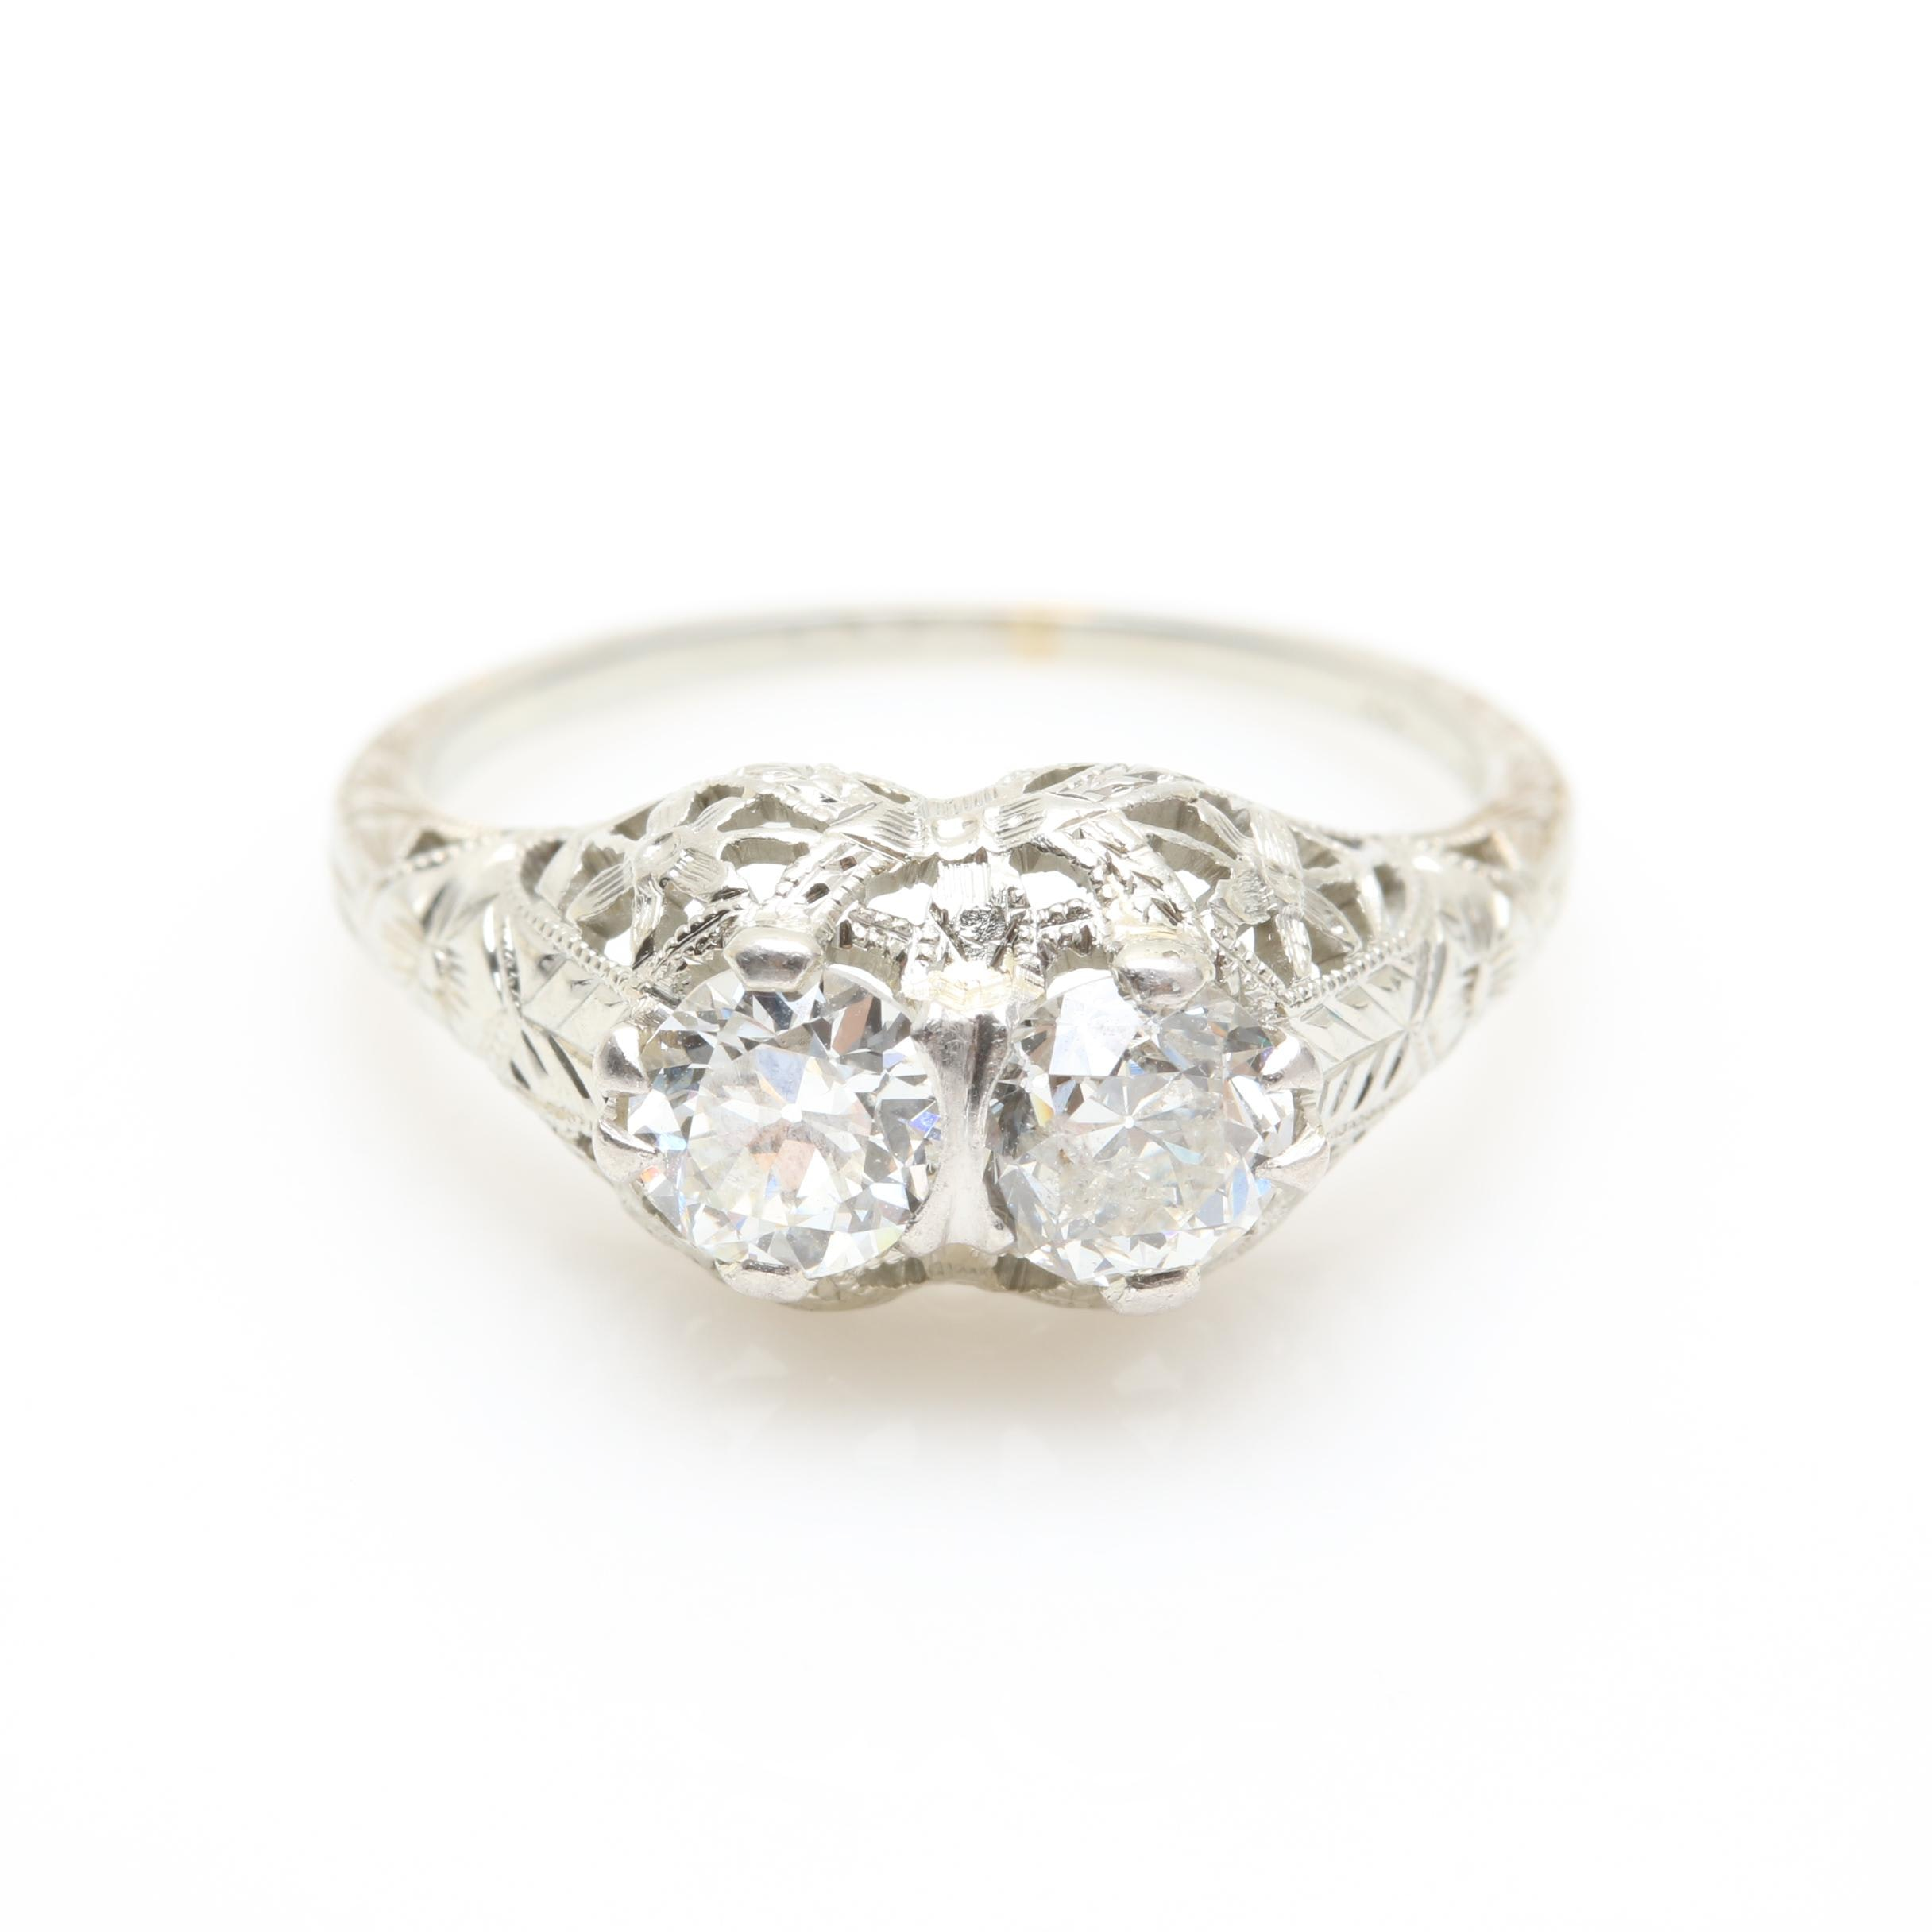 Barth Edwardian 18K White Gold Diamond Ring